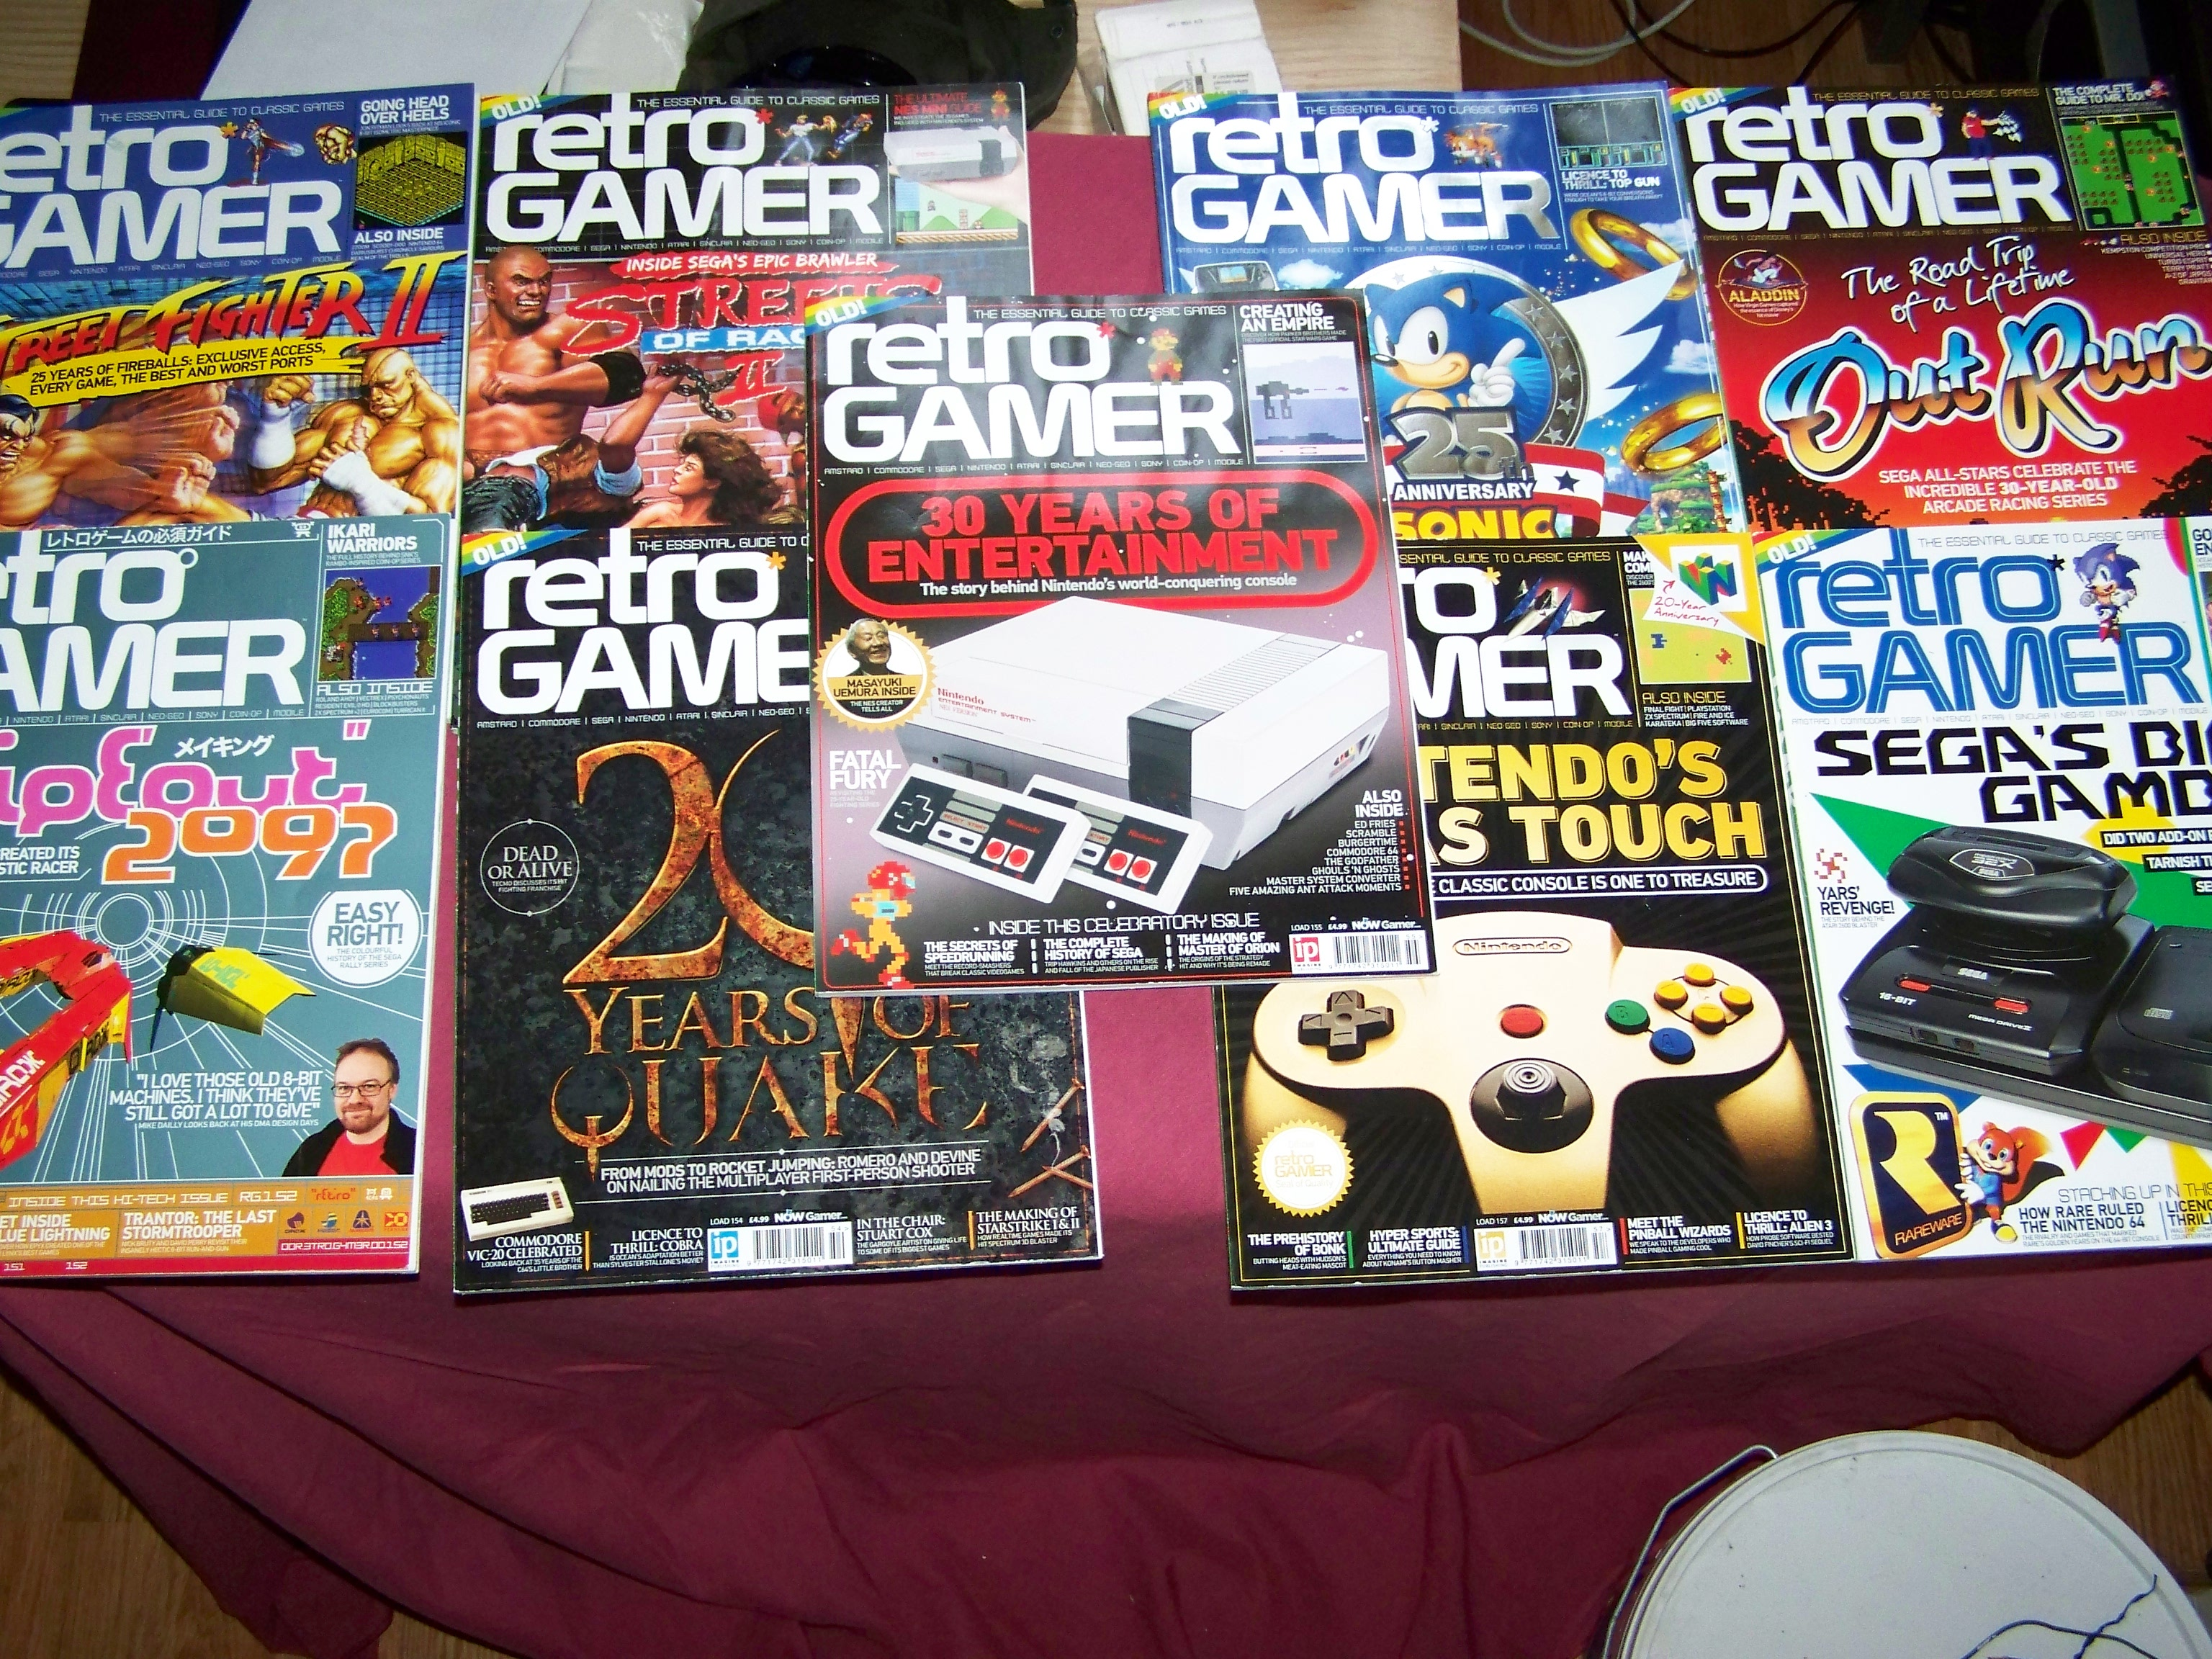 Retro Gamer mags back issues